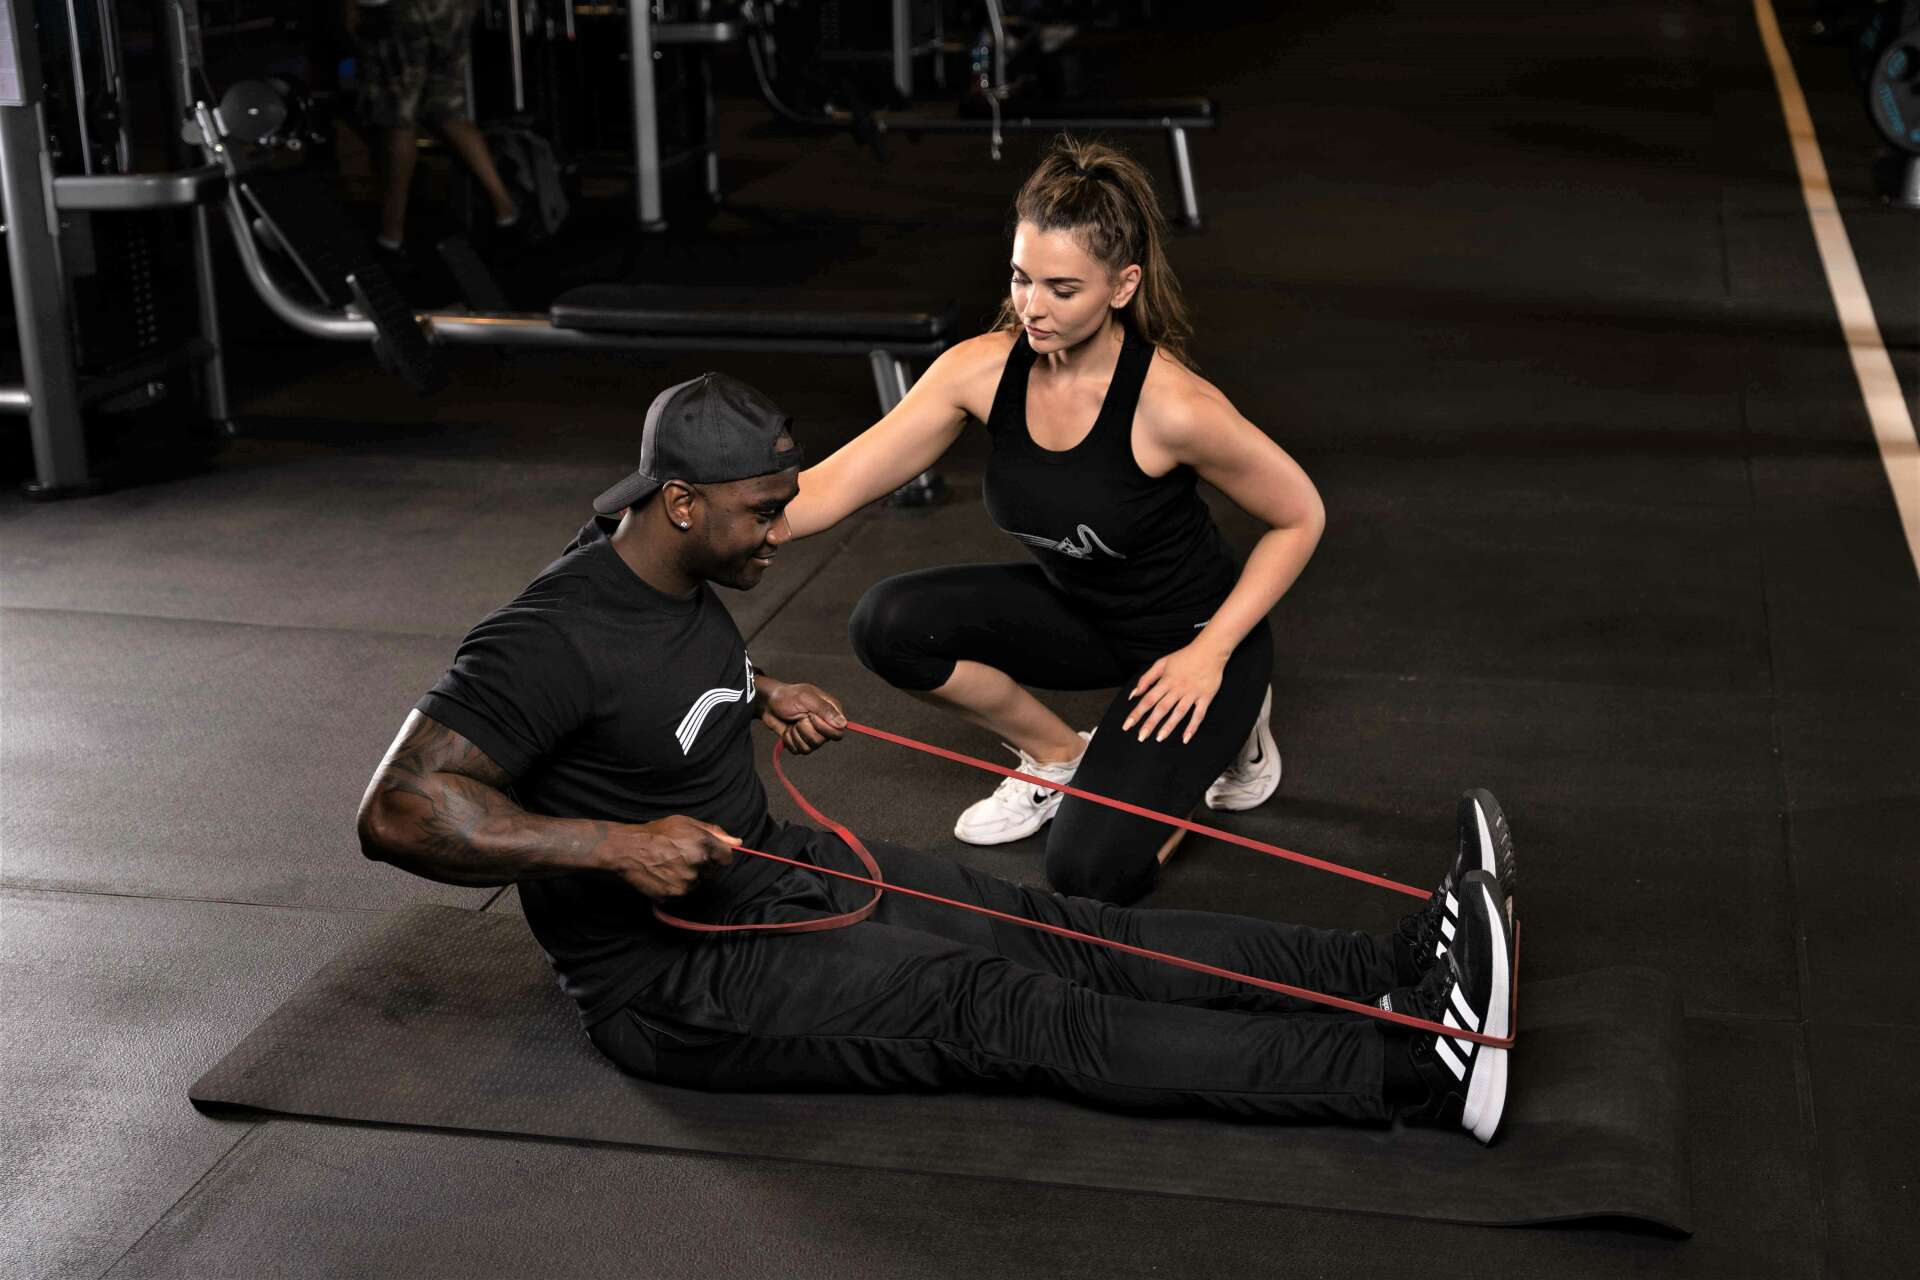 Trifocus Fitness Academy - resistance band training